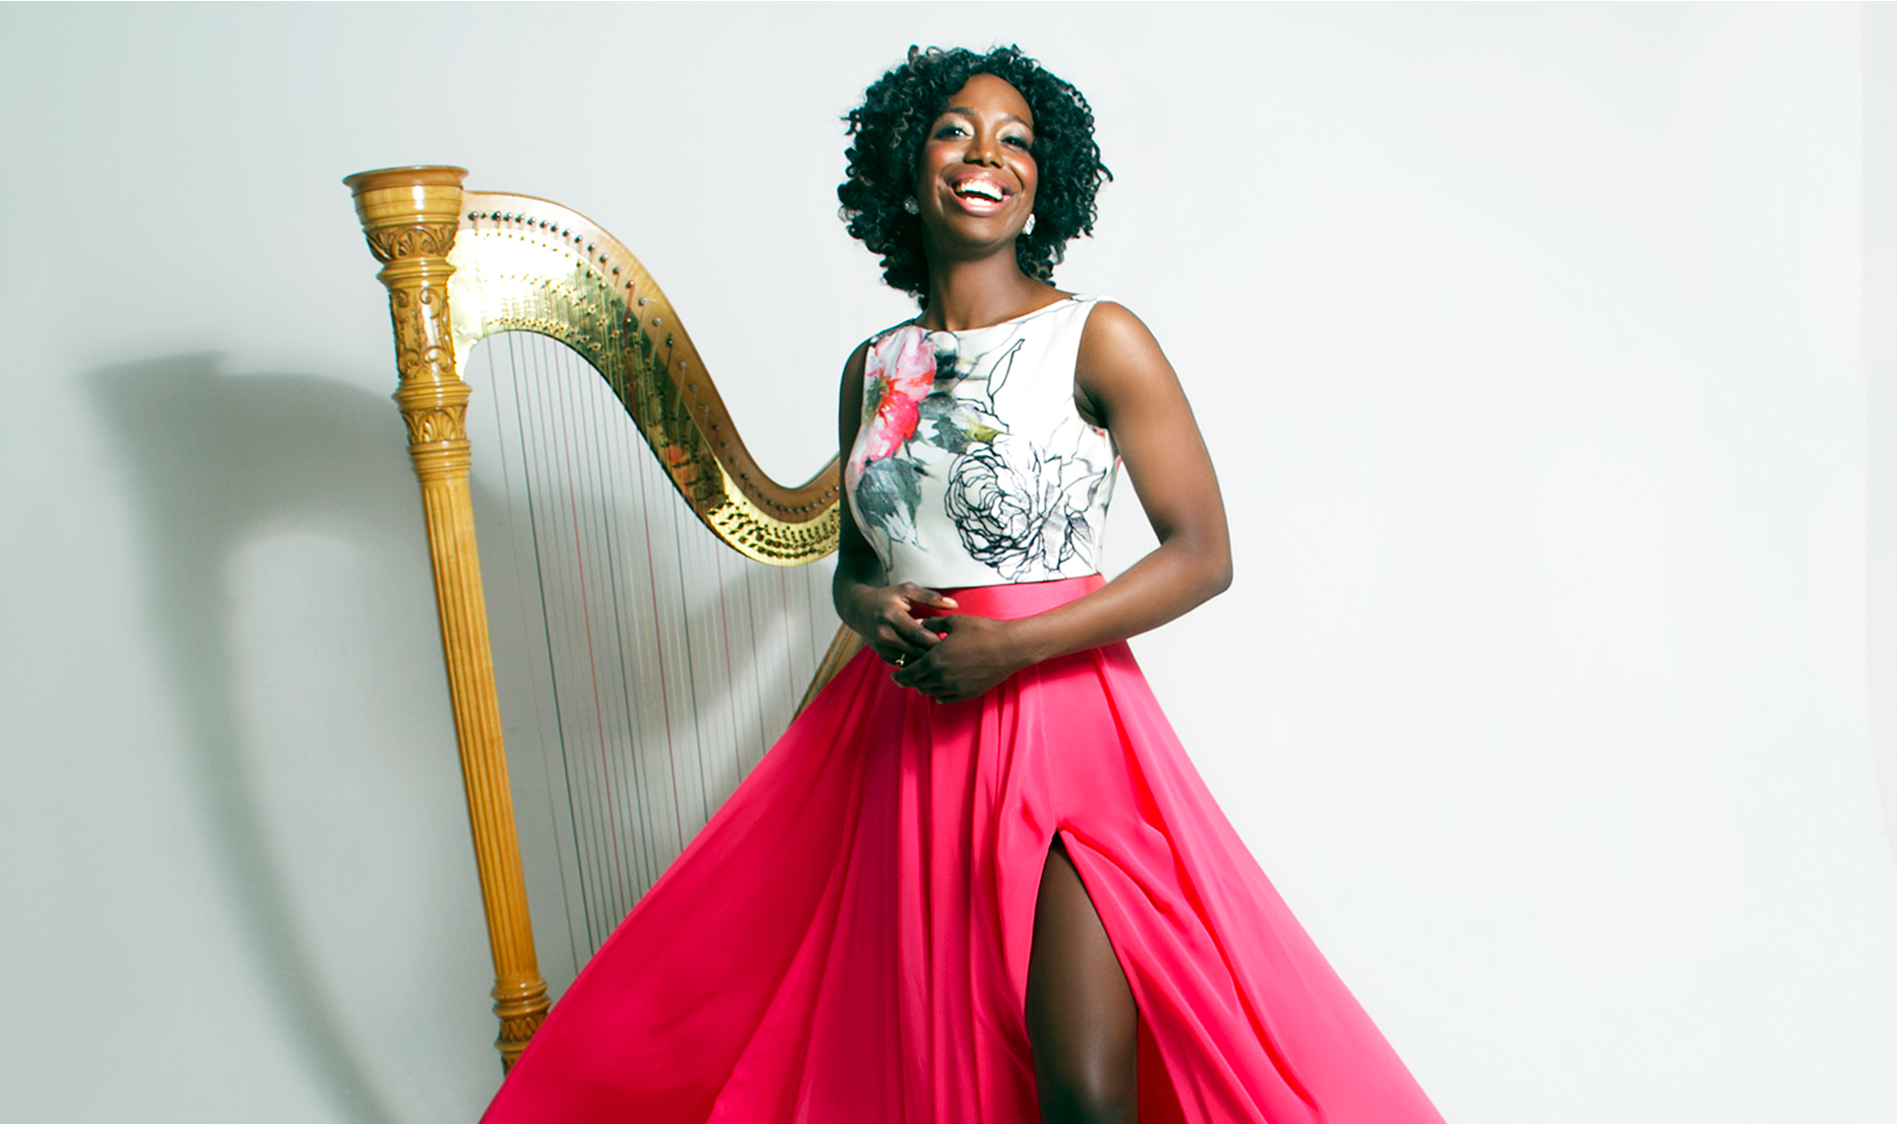 Brandee Younger Announces May Tour Dates in NY, OH, GA